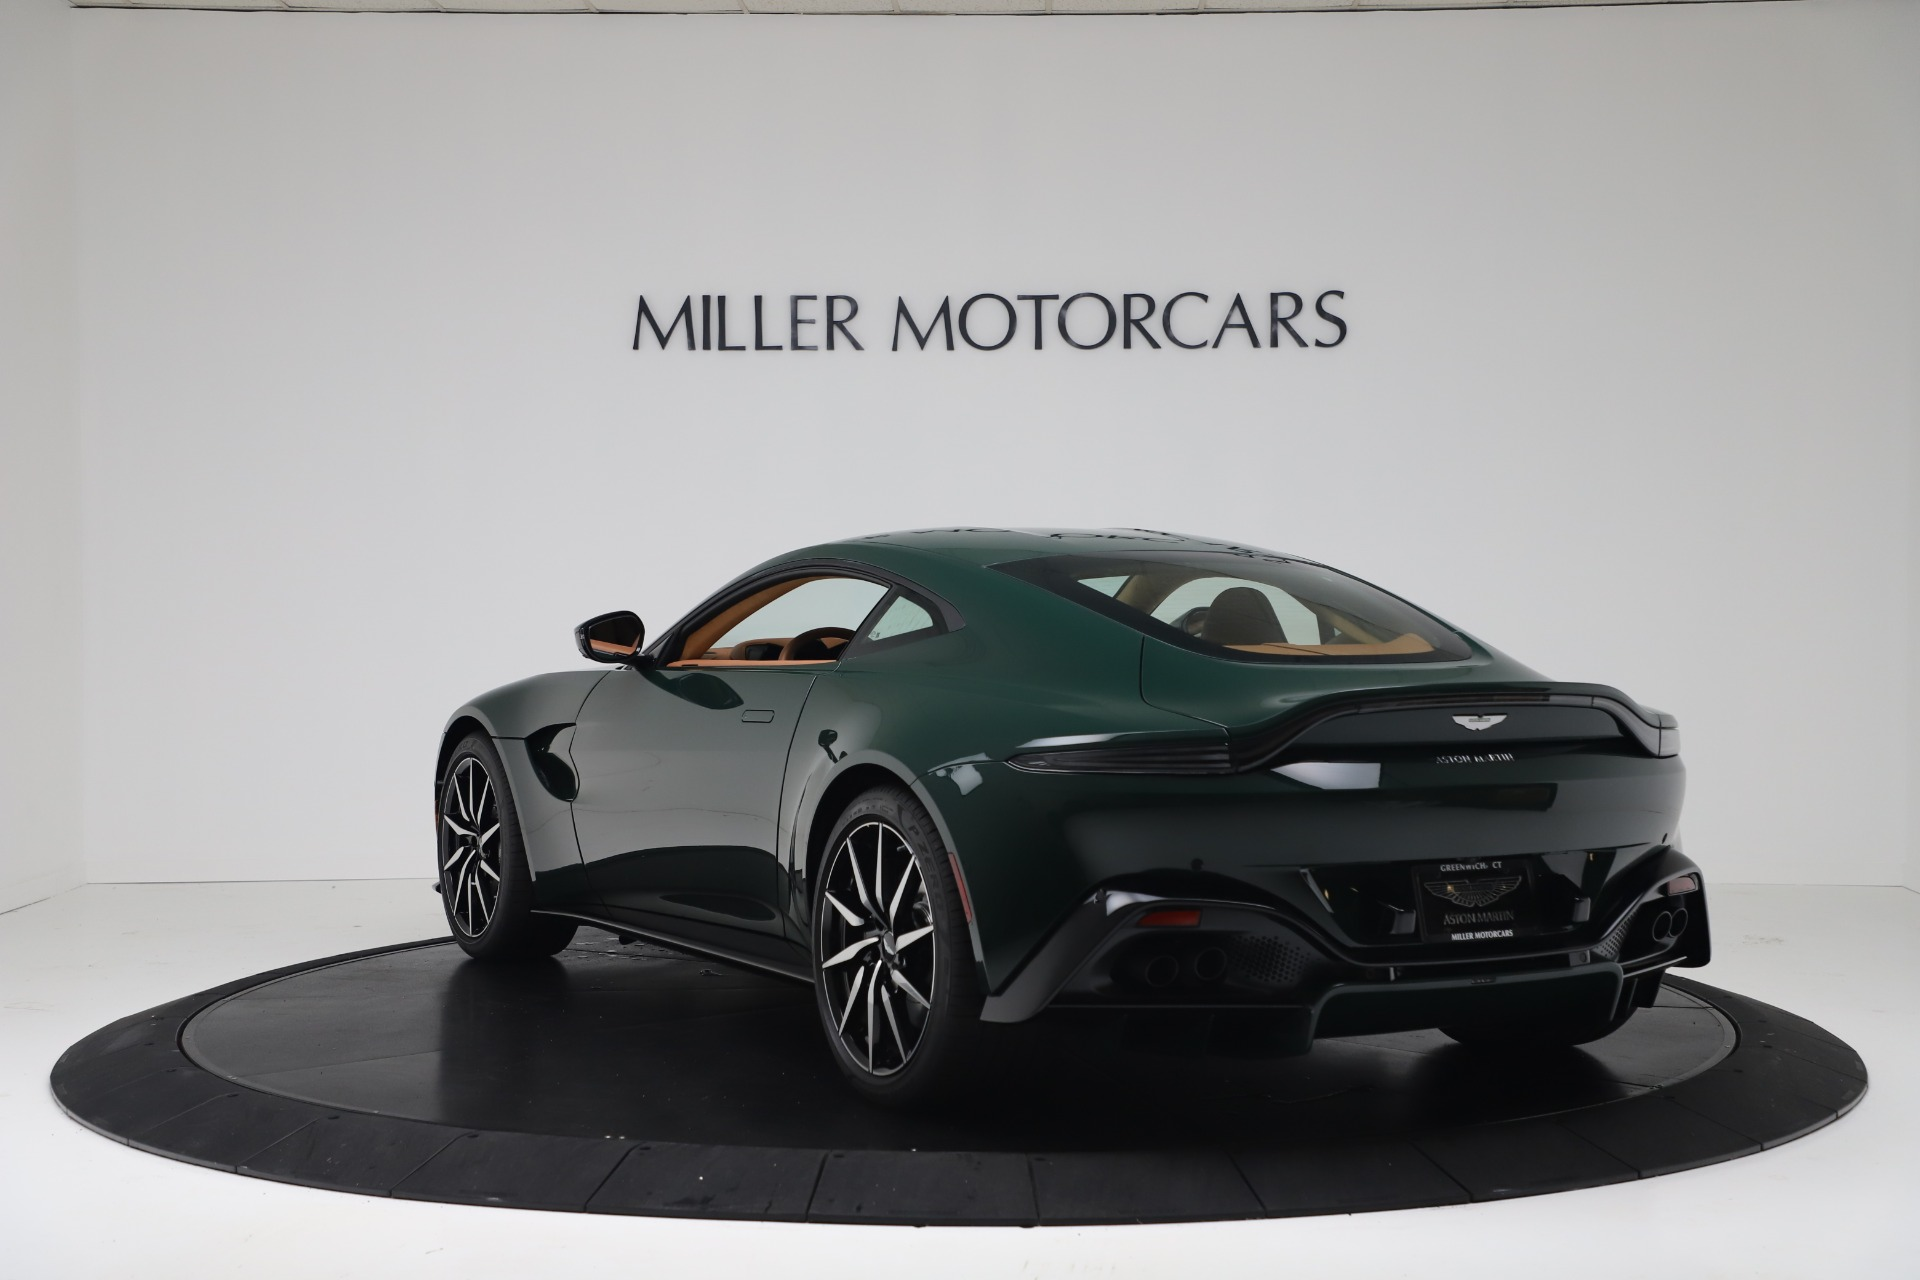 Pre Owned 2020 Aston Martin Vantage Coupe For Sale 159 990 Miller Motorcars Stock A1401b